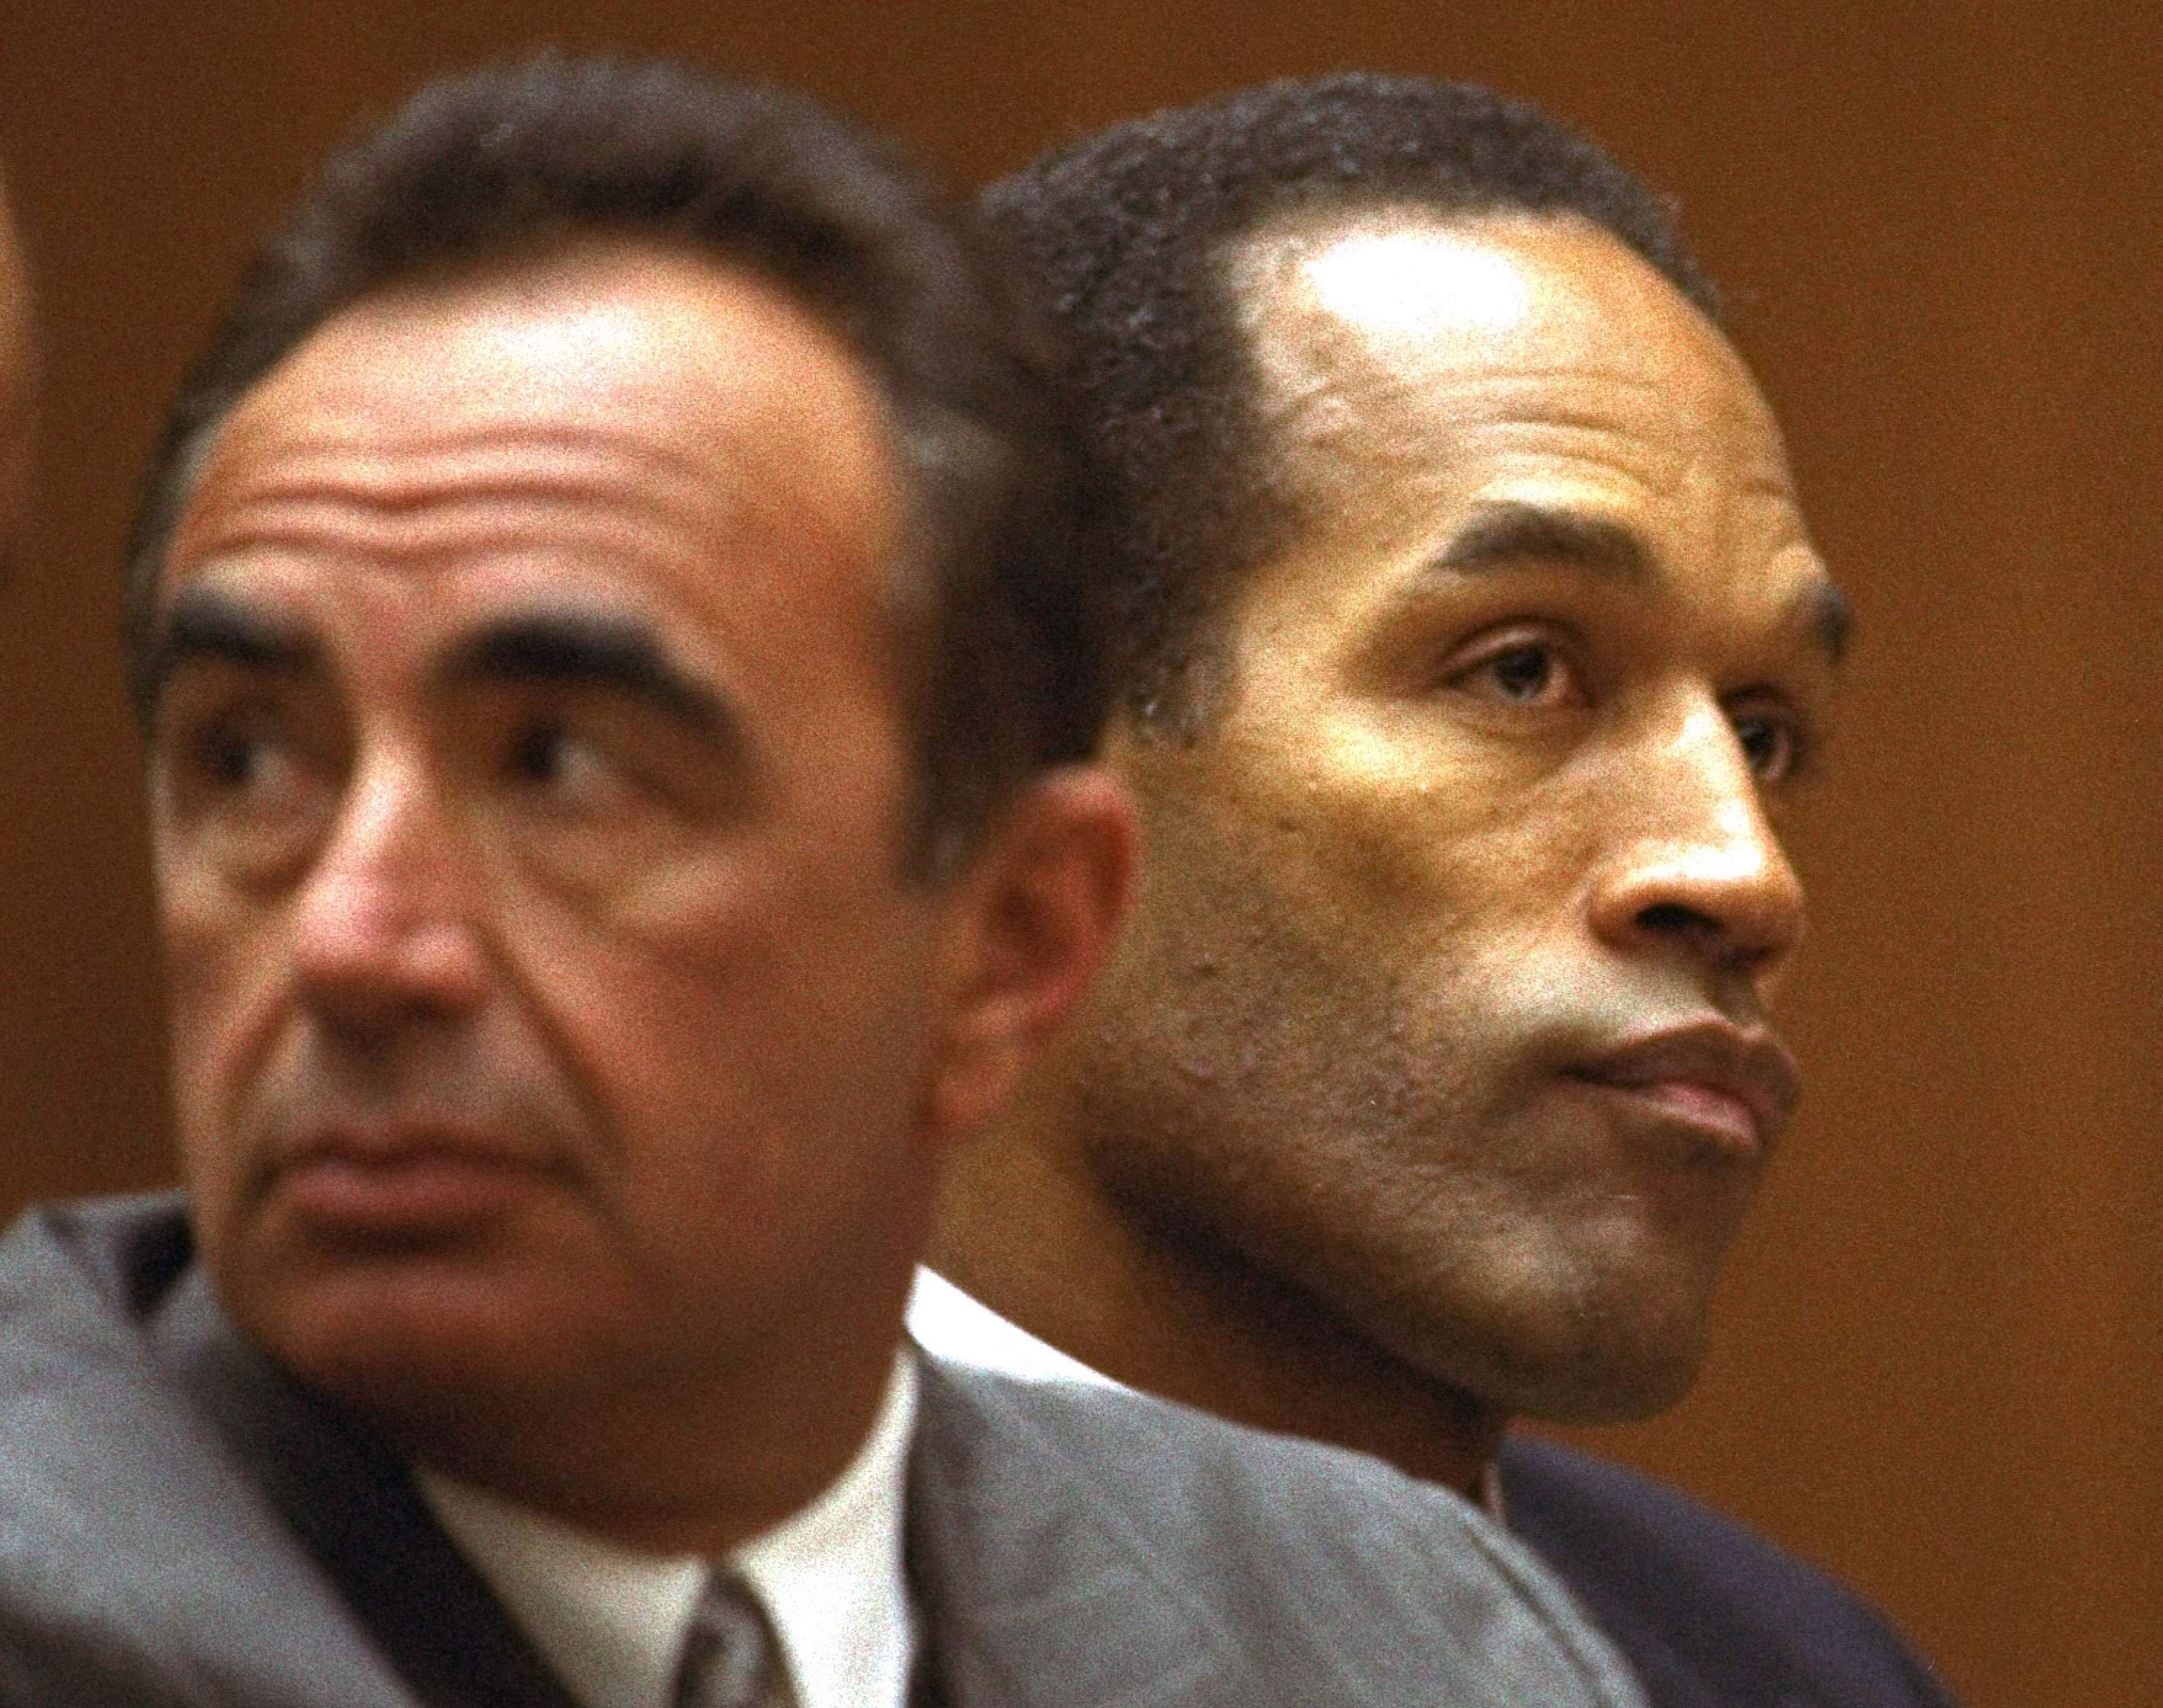 In this Friday, Aug. 26, 1994, file photo, O.J. Simpson and defense attorney Robert Shapiro sit in a Los Angeles Superior courtroom as Judge Lance Ito refused a request to open an afternoon session to the media. NICK UT/THE ASSOCIATED PRESS